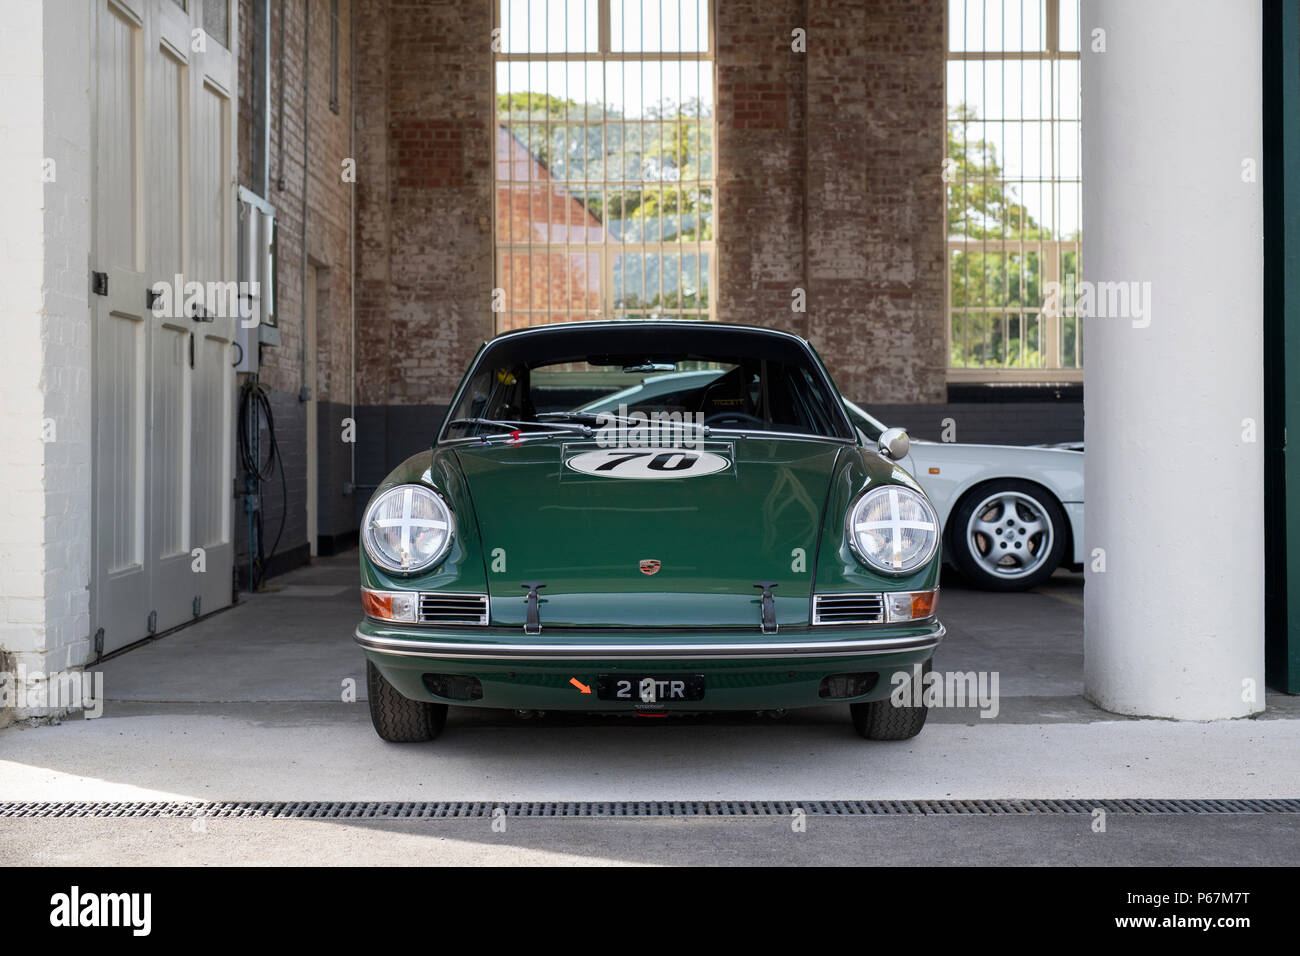 Porsche sports car in garage at Bicester heritage centre. Bicester, Oxfordshire, England Stock Photo